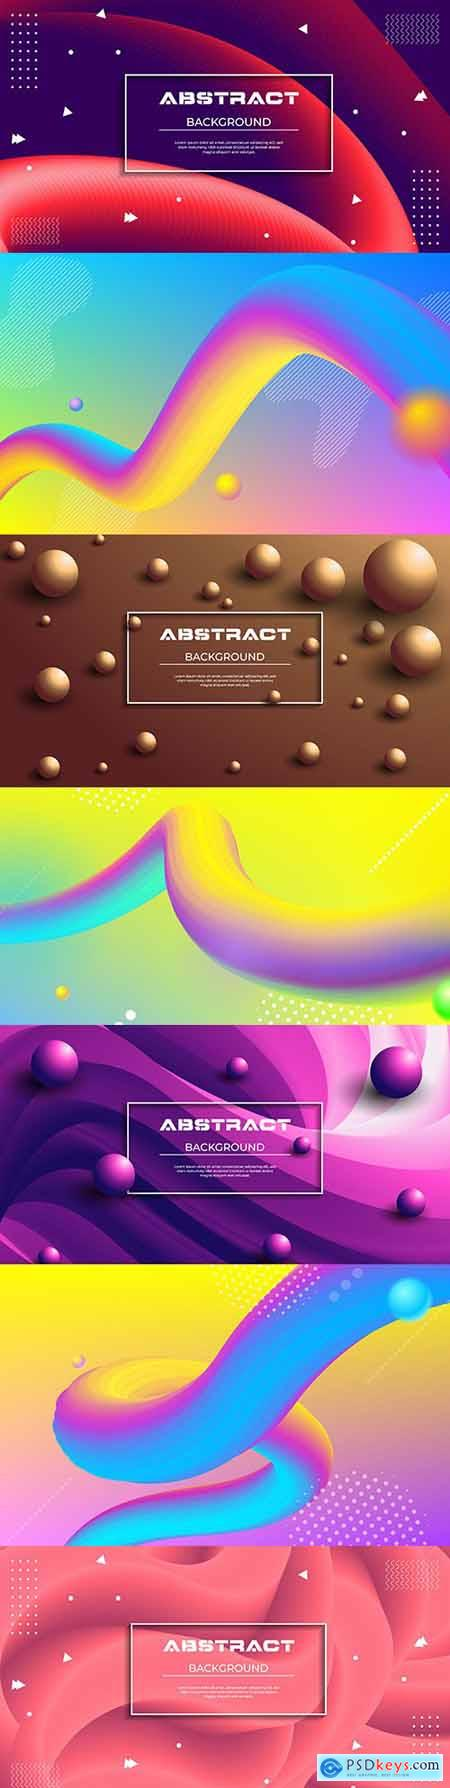 Fashion and abstract color gradient 3d background